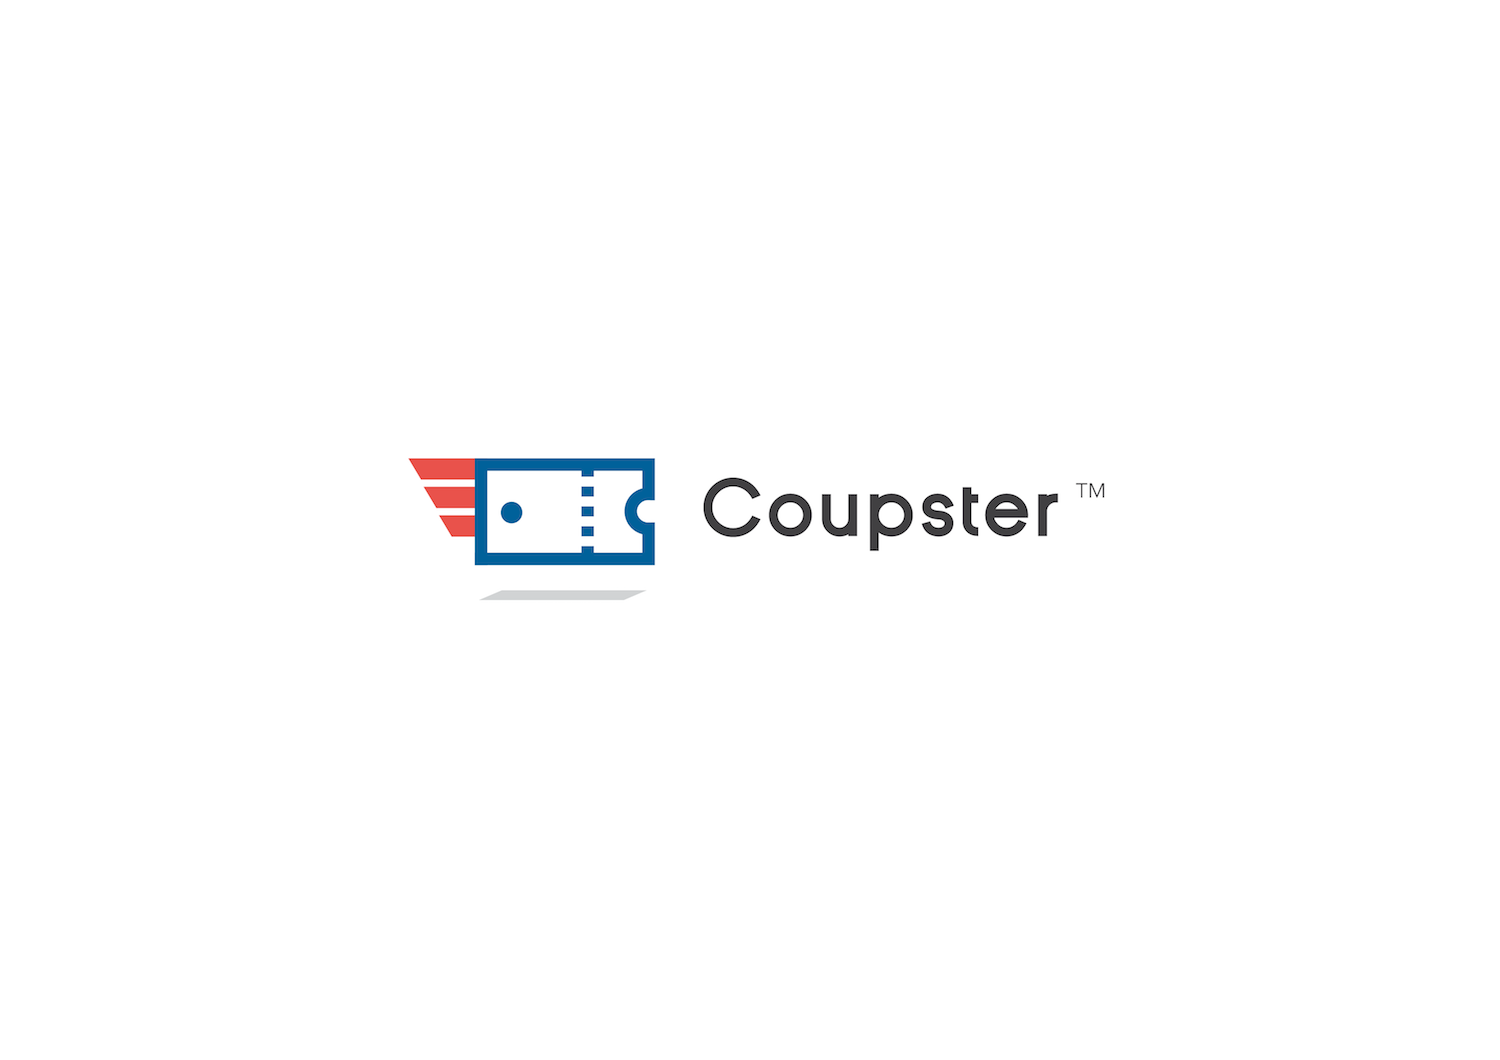 Professional Bold Coupon Logo Design For Coupster By Matt Bradshaw